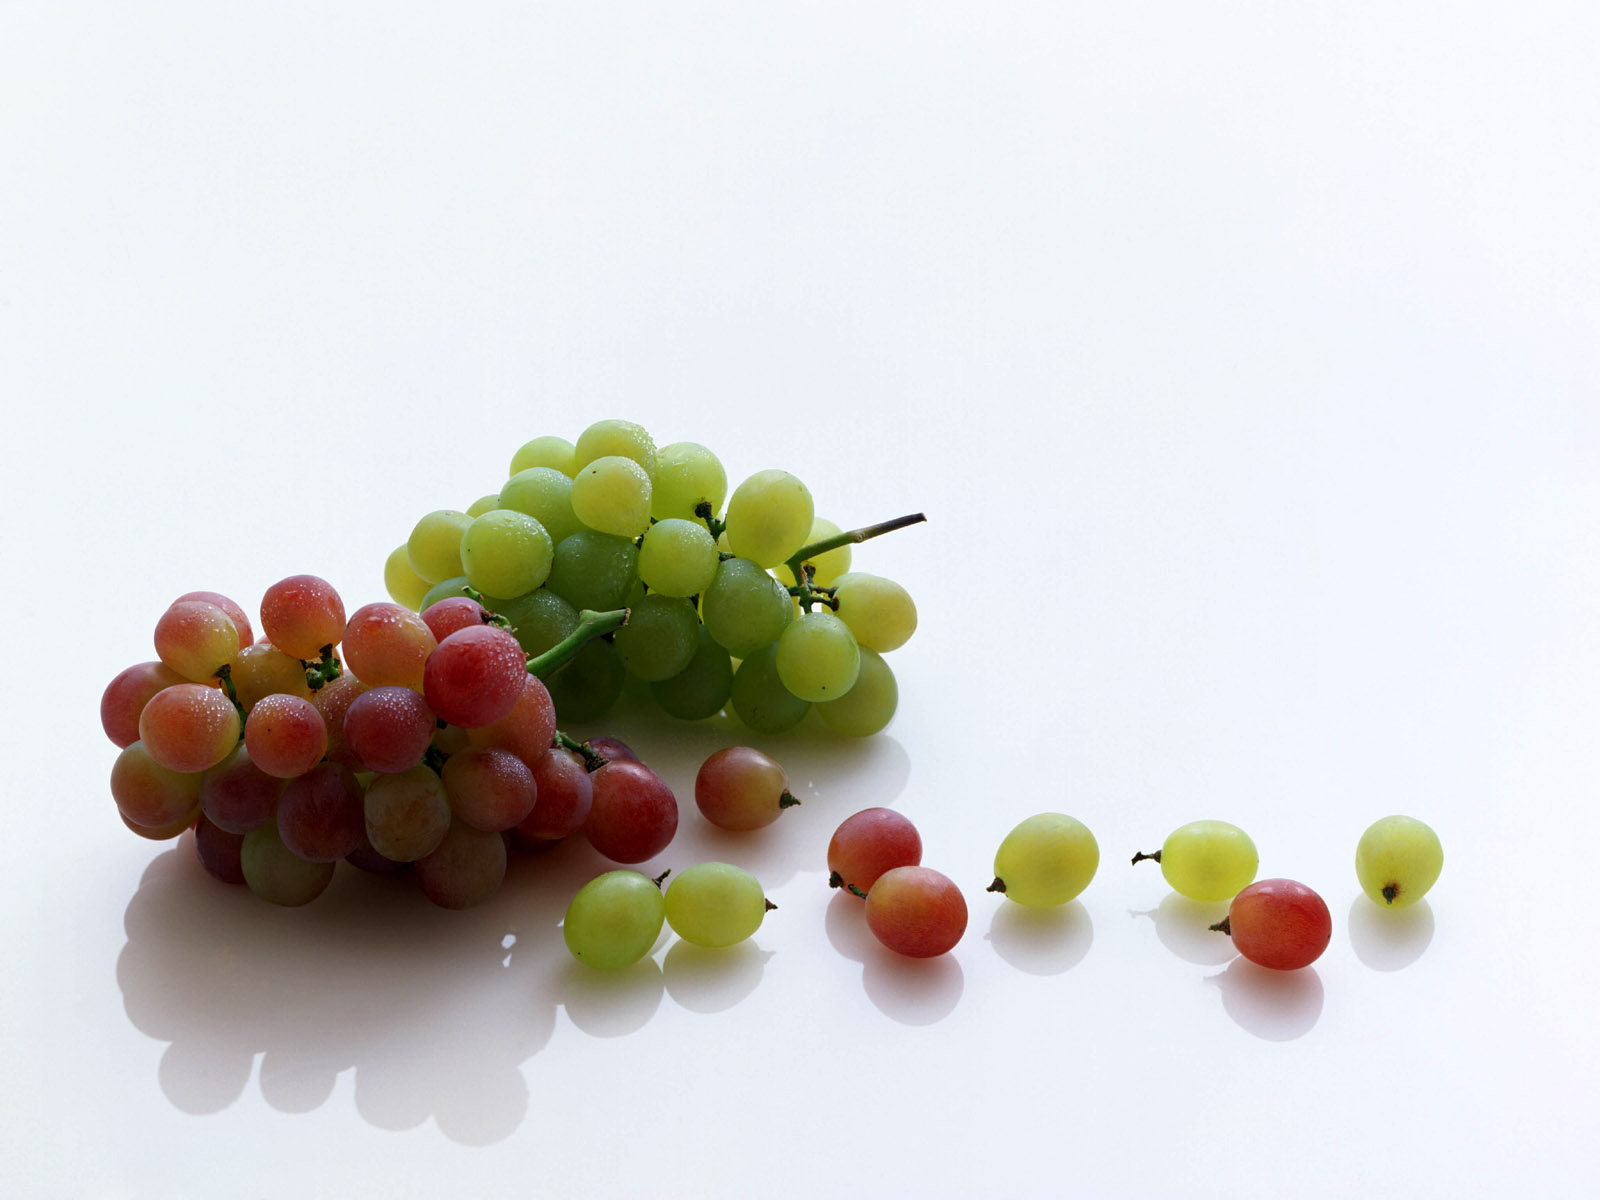 Grapes wallpapers Grapes stock photos 1600x1200